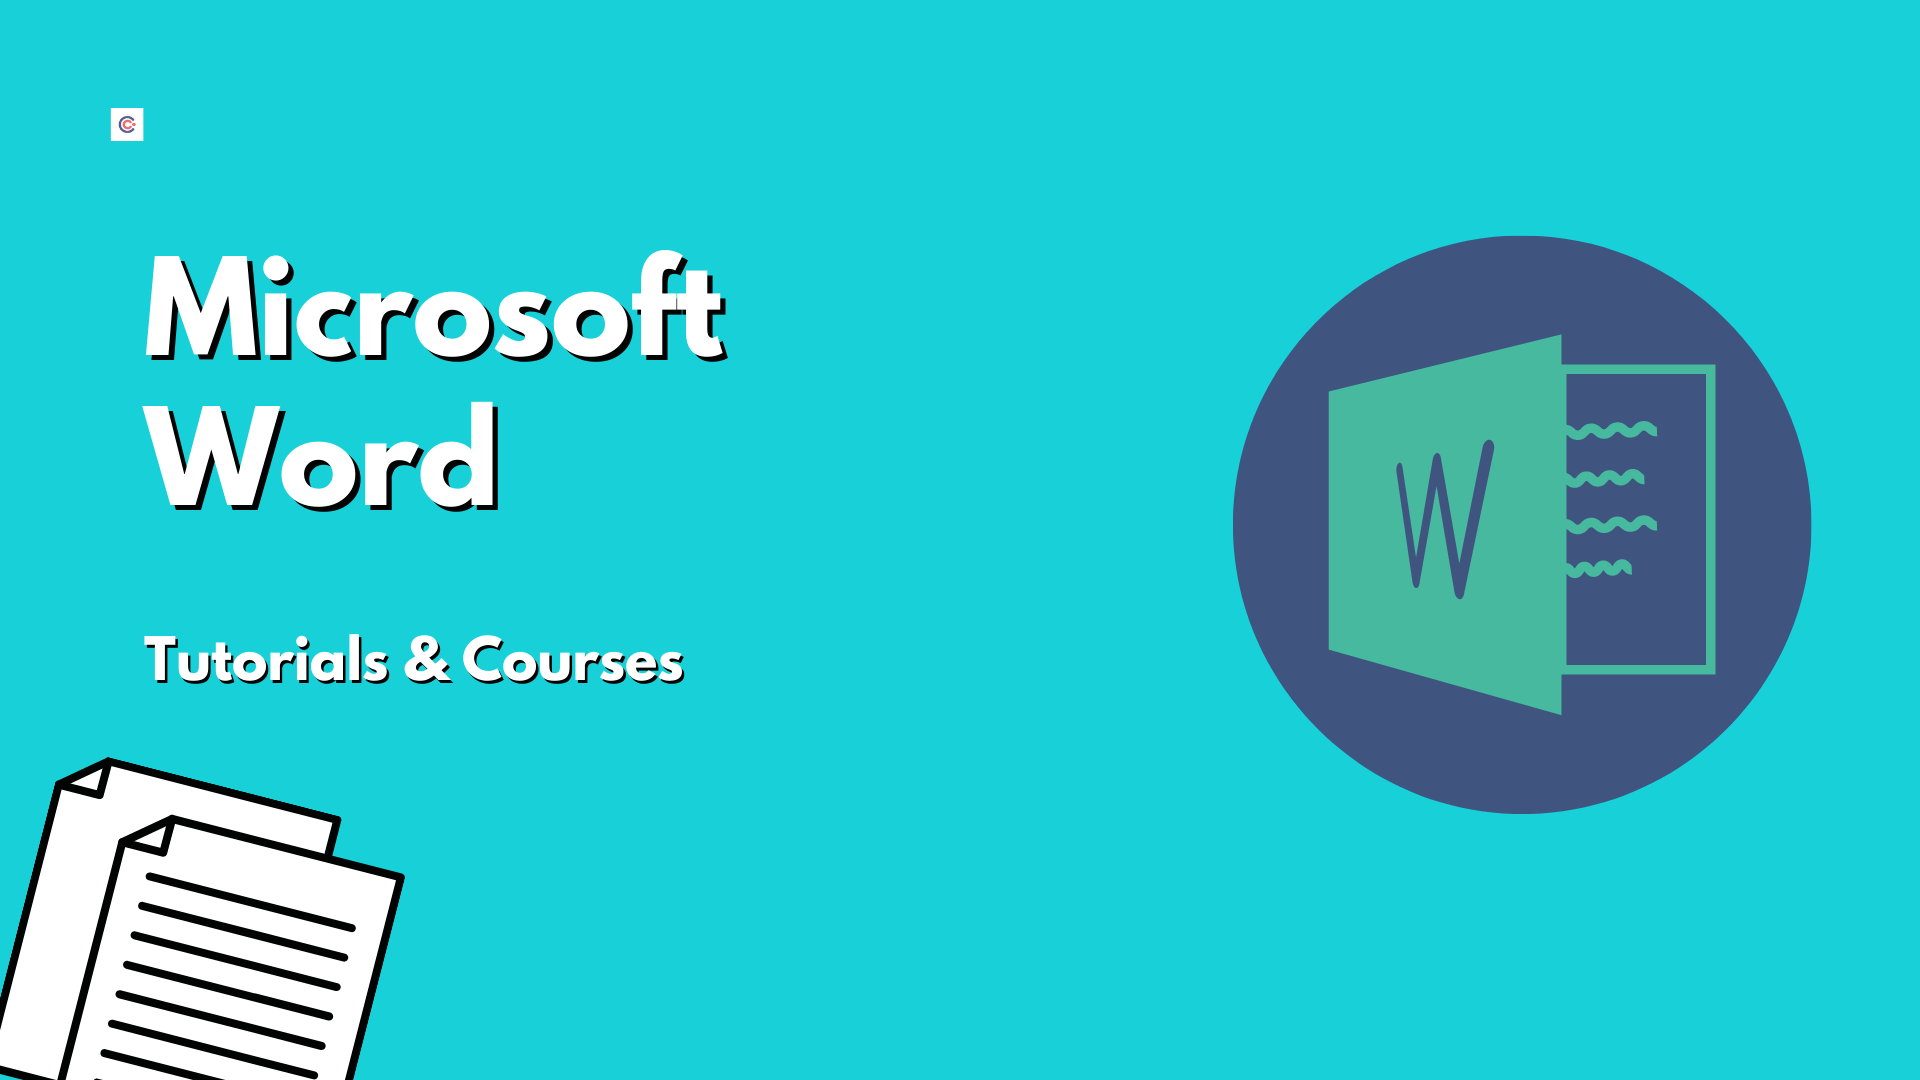 7 Best Microsoft Word Tutorials & Courses - Learn MS Word Online